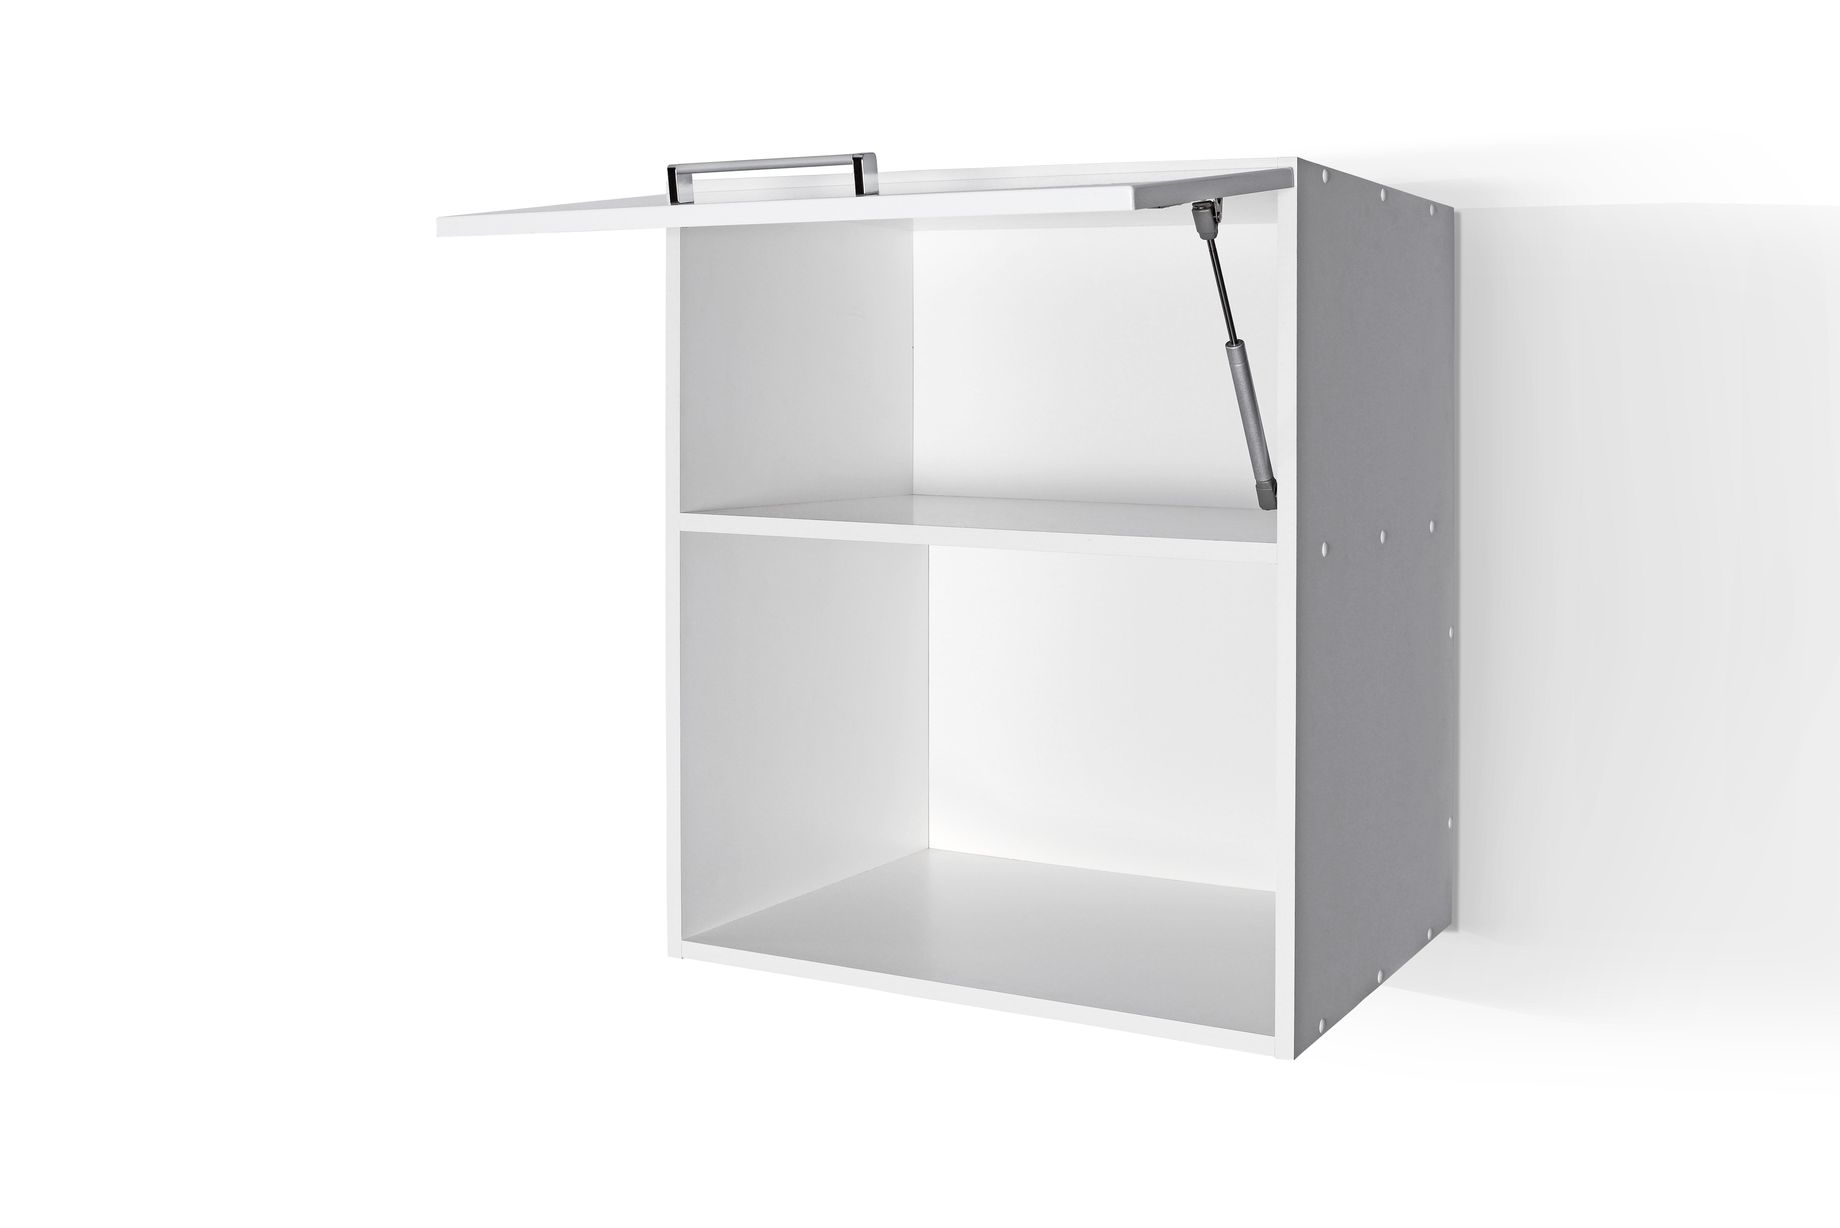 Microwave Pantry Cabinet With Insert Units Euro Product Categories Kitchen Cabinets